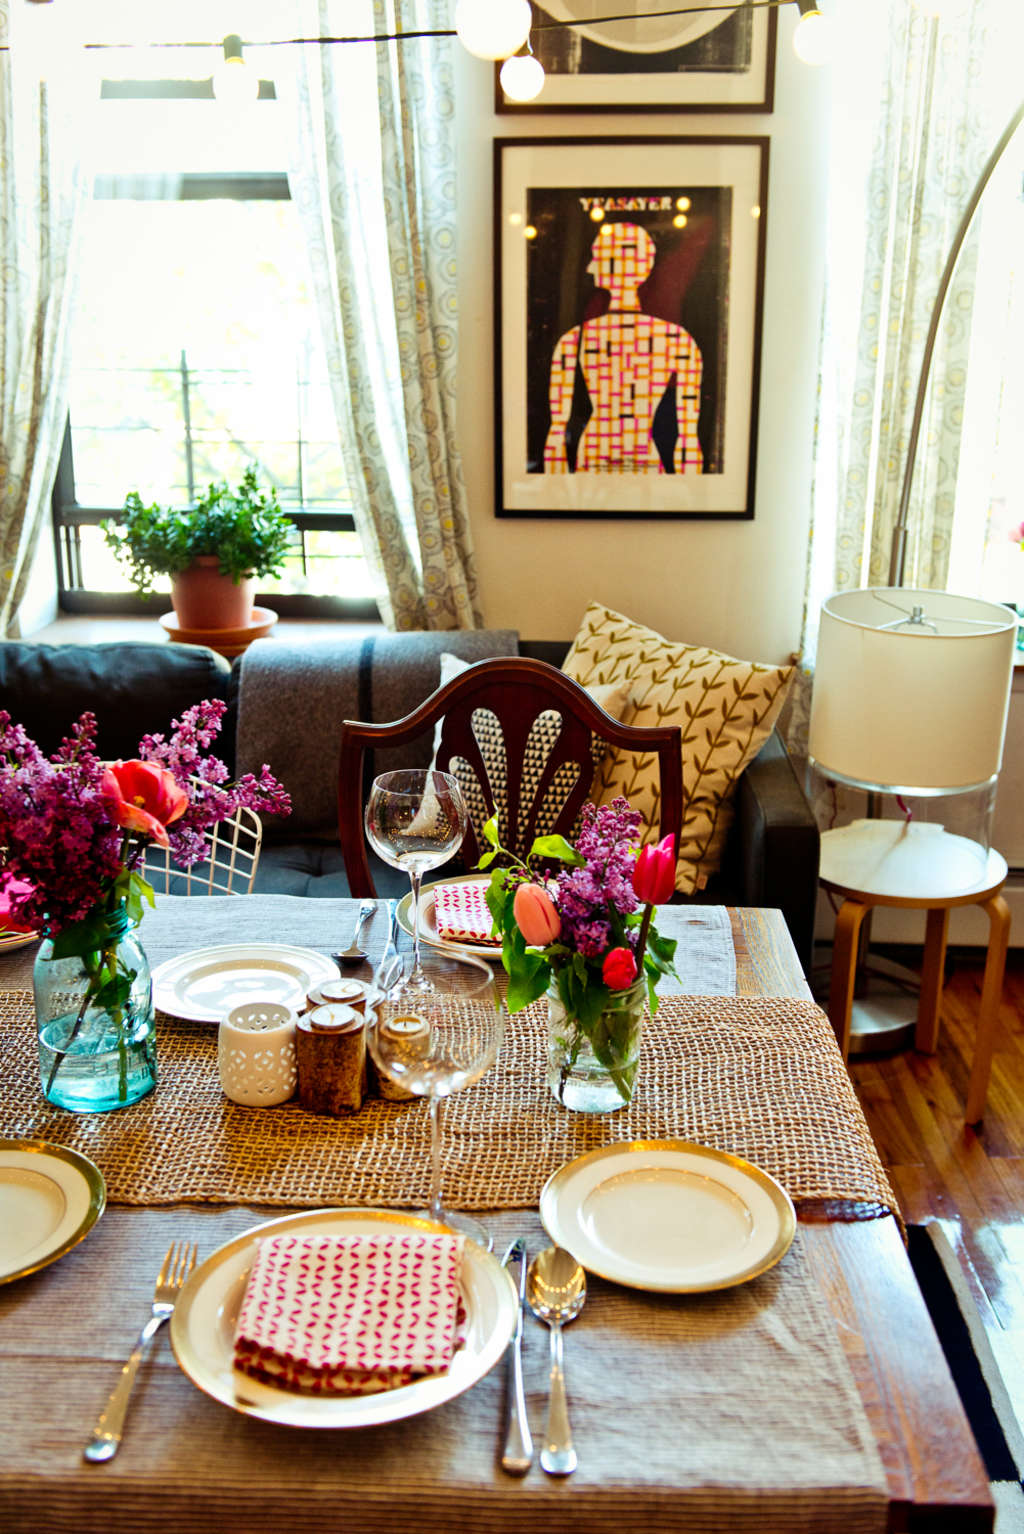 A Spring Vegetarian Dinner for Six: The Party Plan